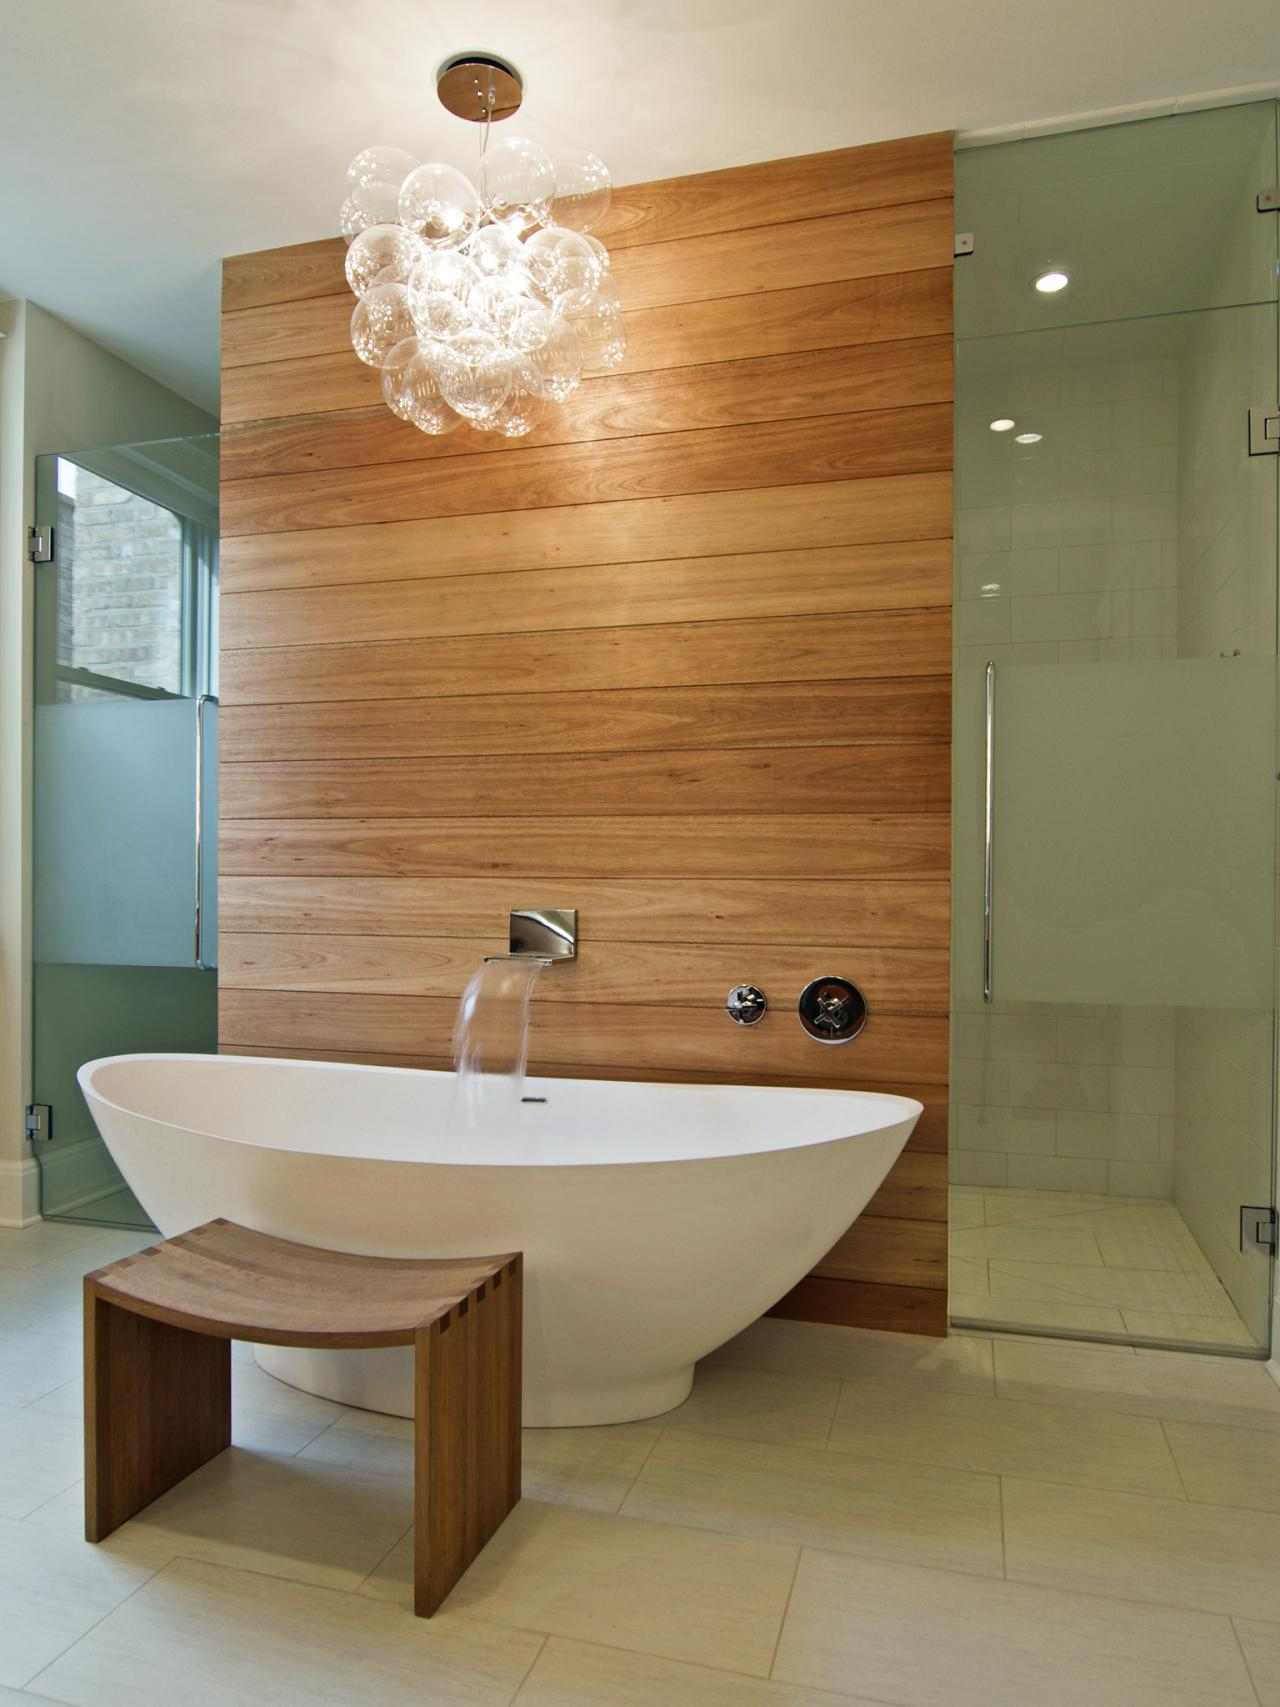 Bathrooms Modern Bathroom With Oval Modern Bathtub And Wooden Pertaining To Bathroom Safe Chandeliers (Image 13 of 24)